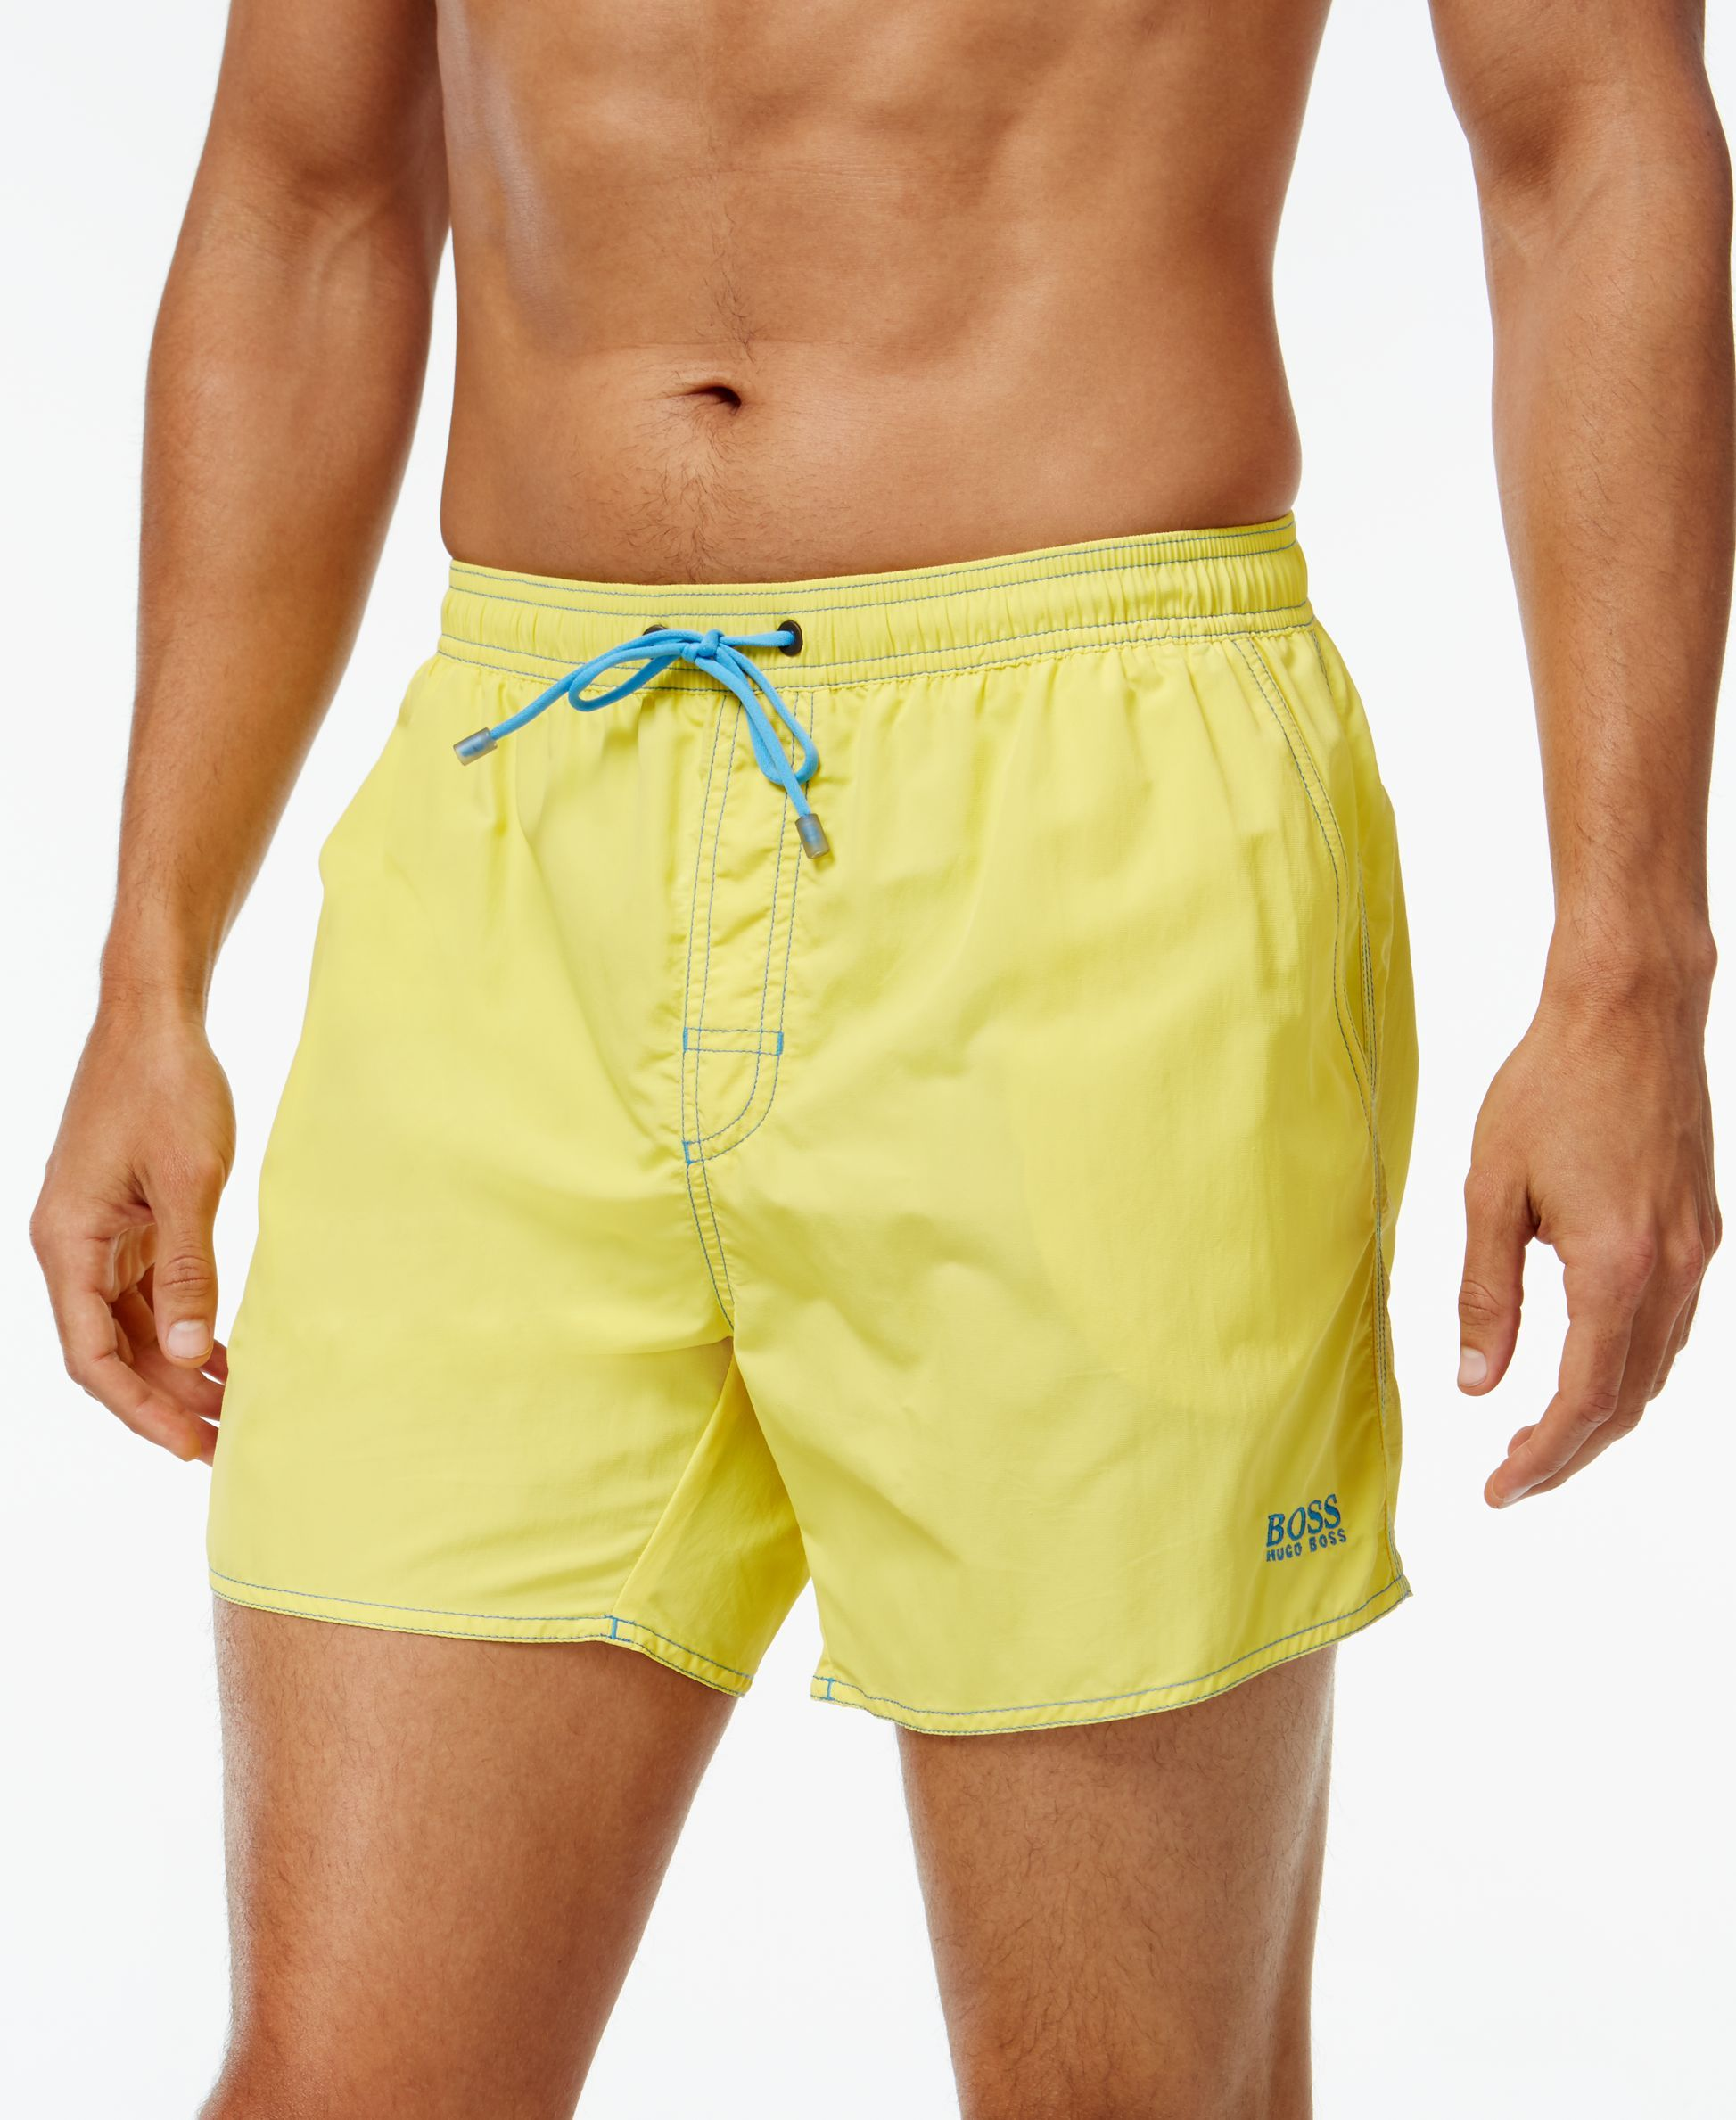 7b17a9c2b Boss Hugo Boss Lobster Swim Trunks | Men's Beach Wear | Swim trunks ...